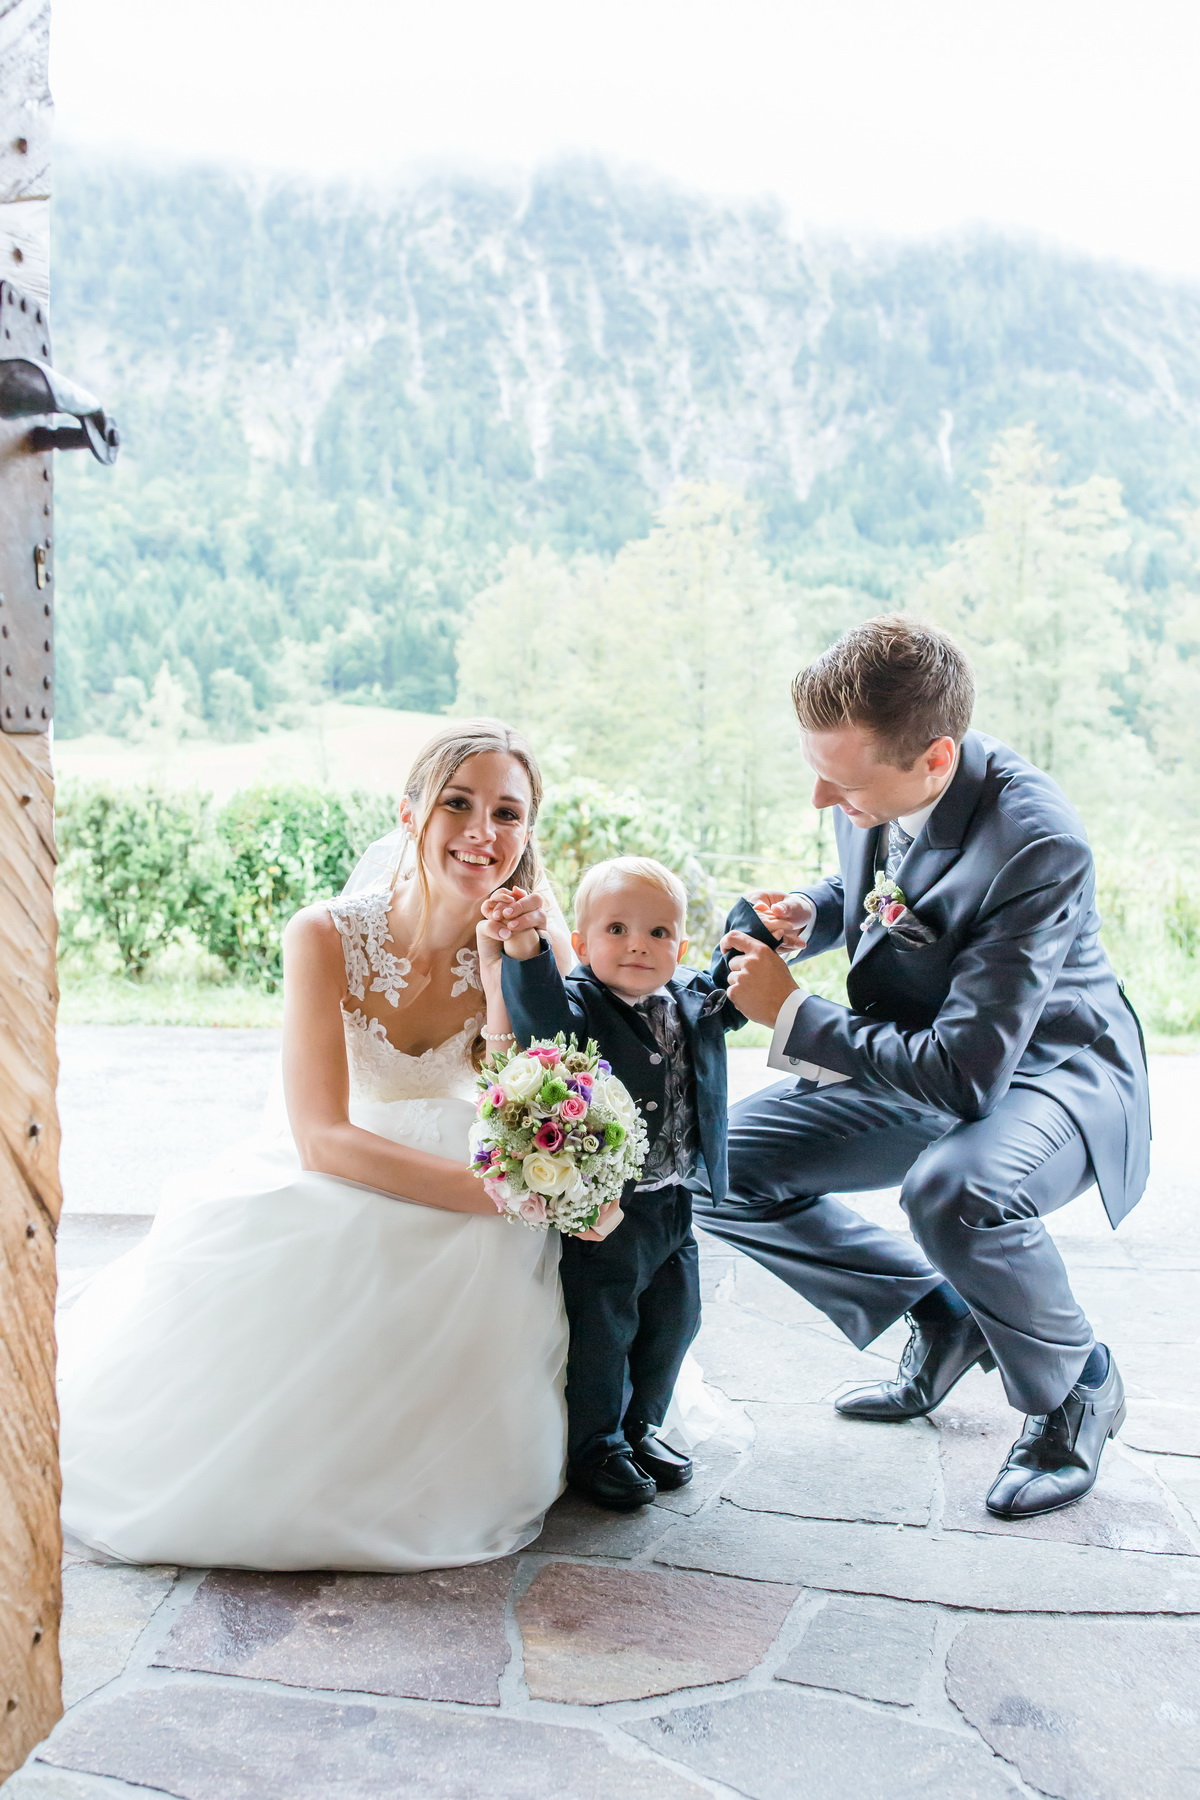 Claudia Sittig Photography - Couple - Hochzeit  Wedding - Selina und Richard 43a